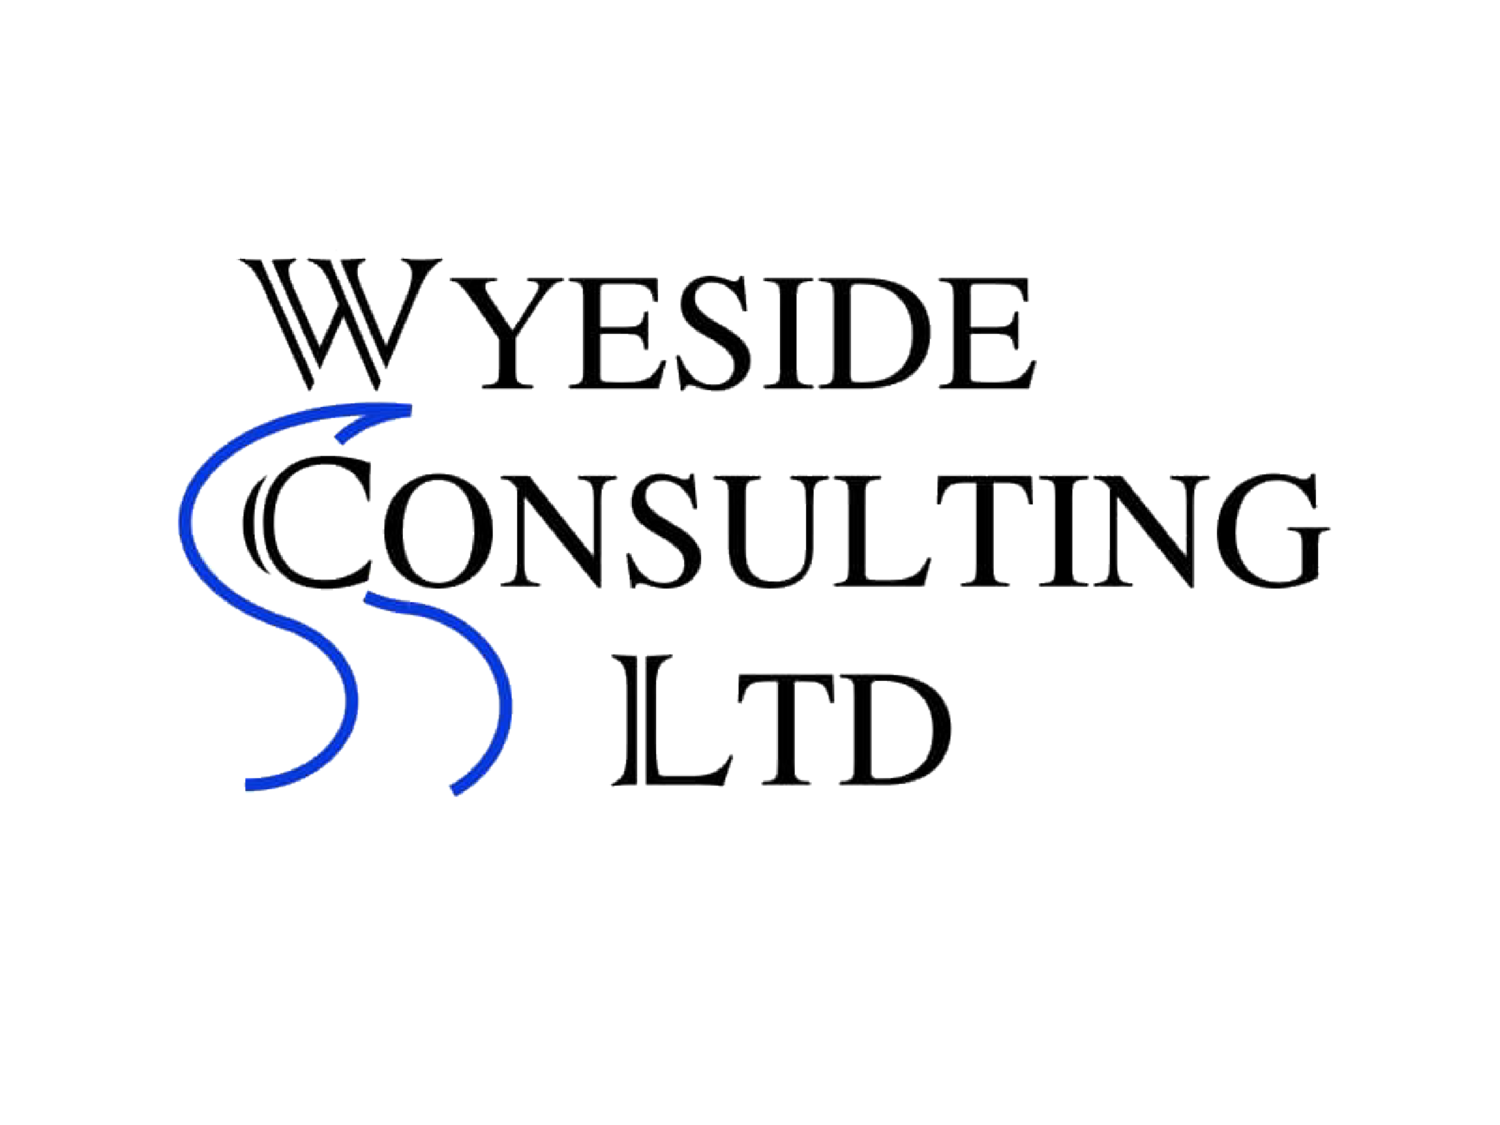 Wyeside Consulting Ltd